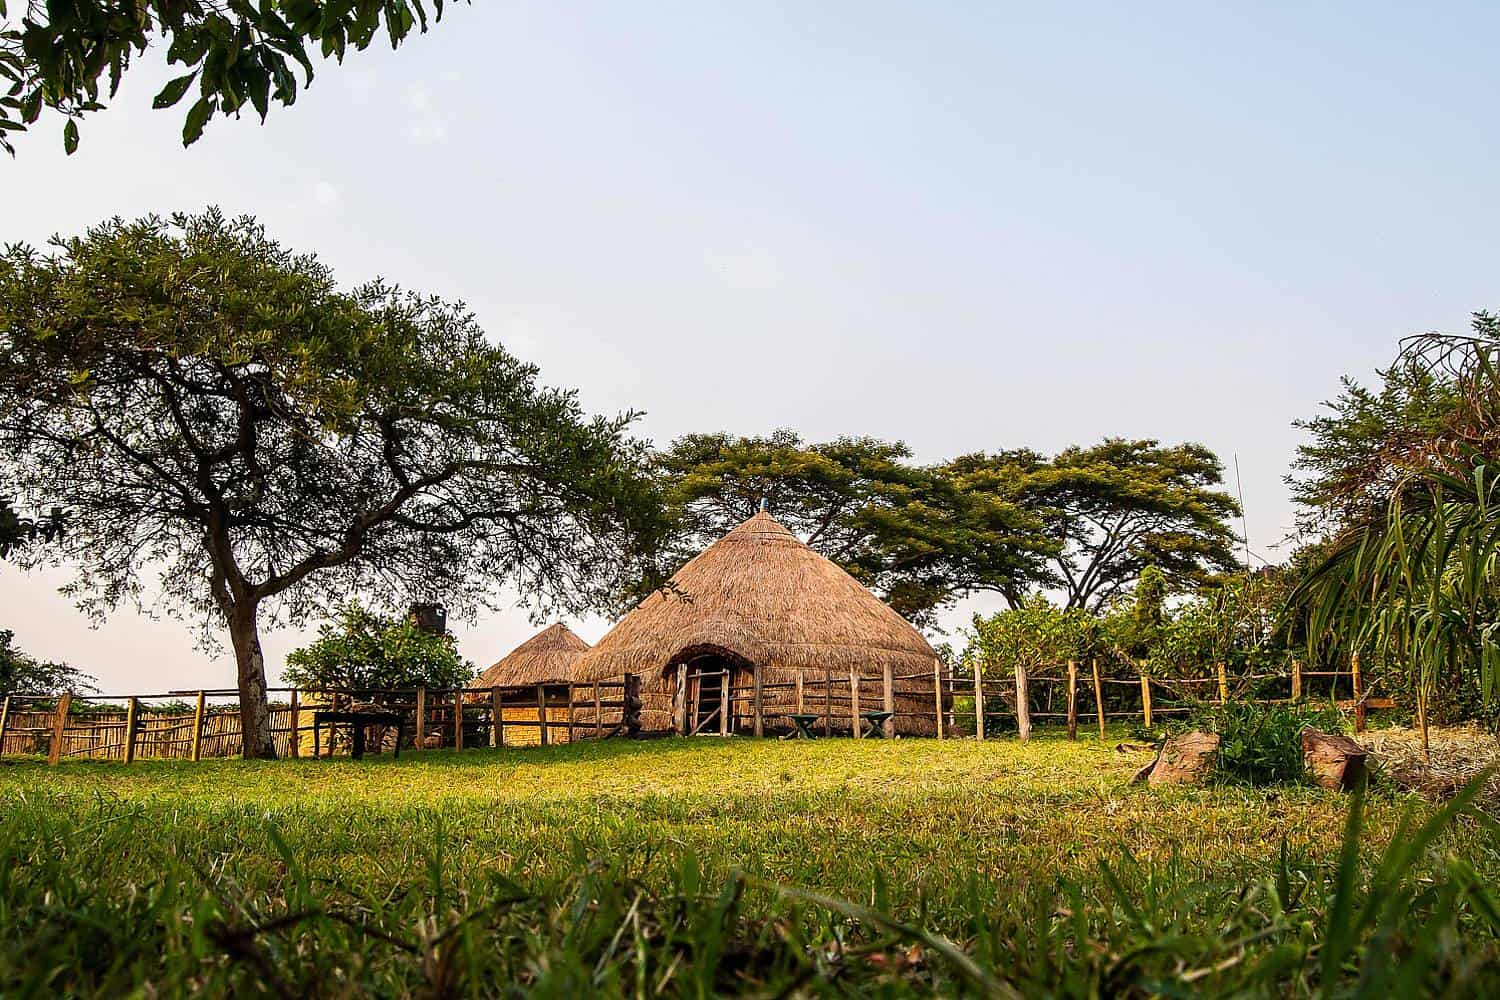 Authentic Cultural Experience Of The Nshenyi Village - Ankole Tribe